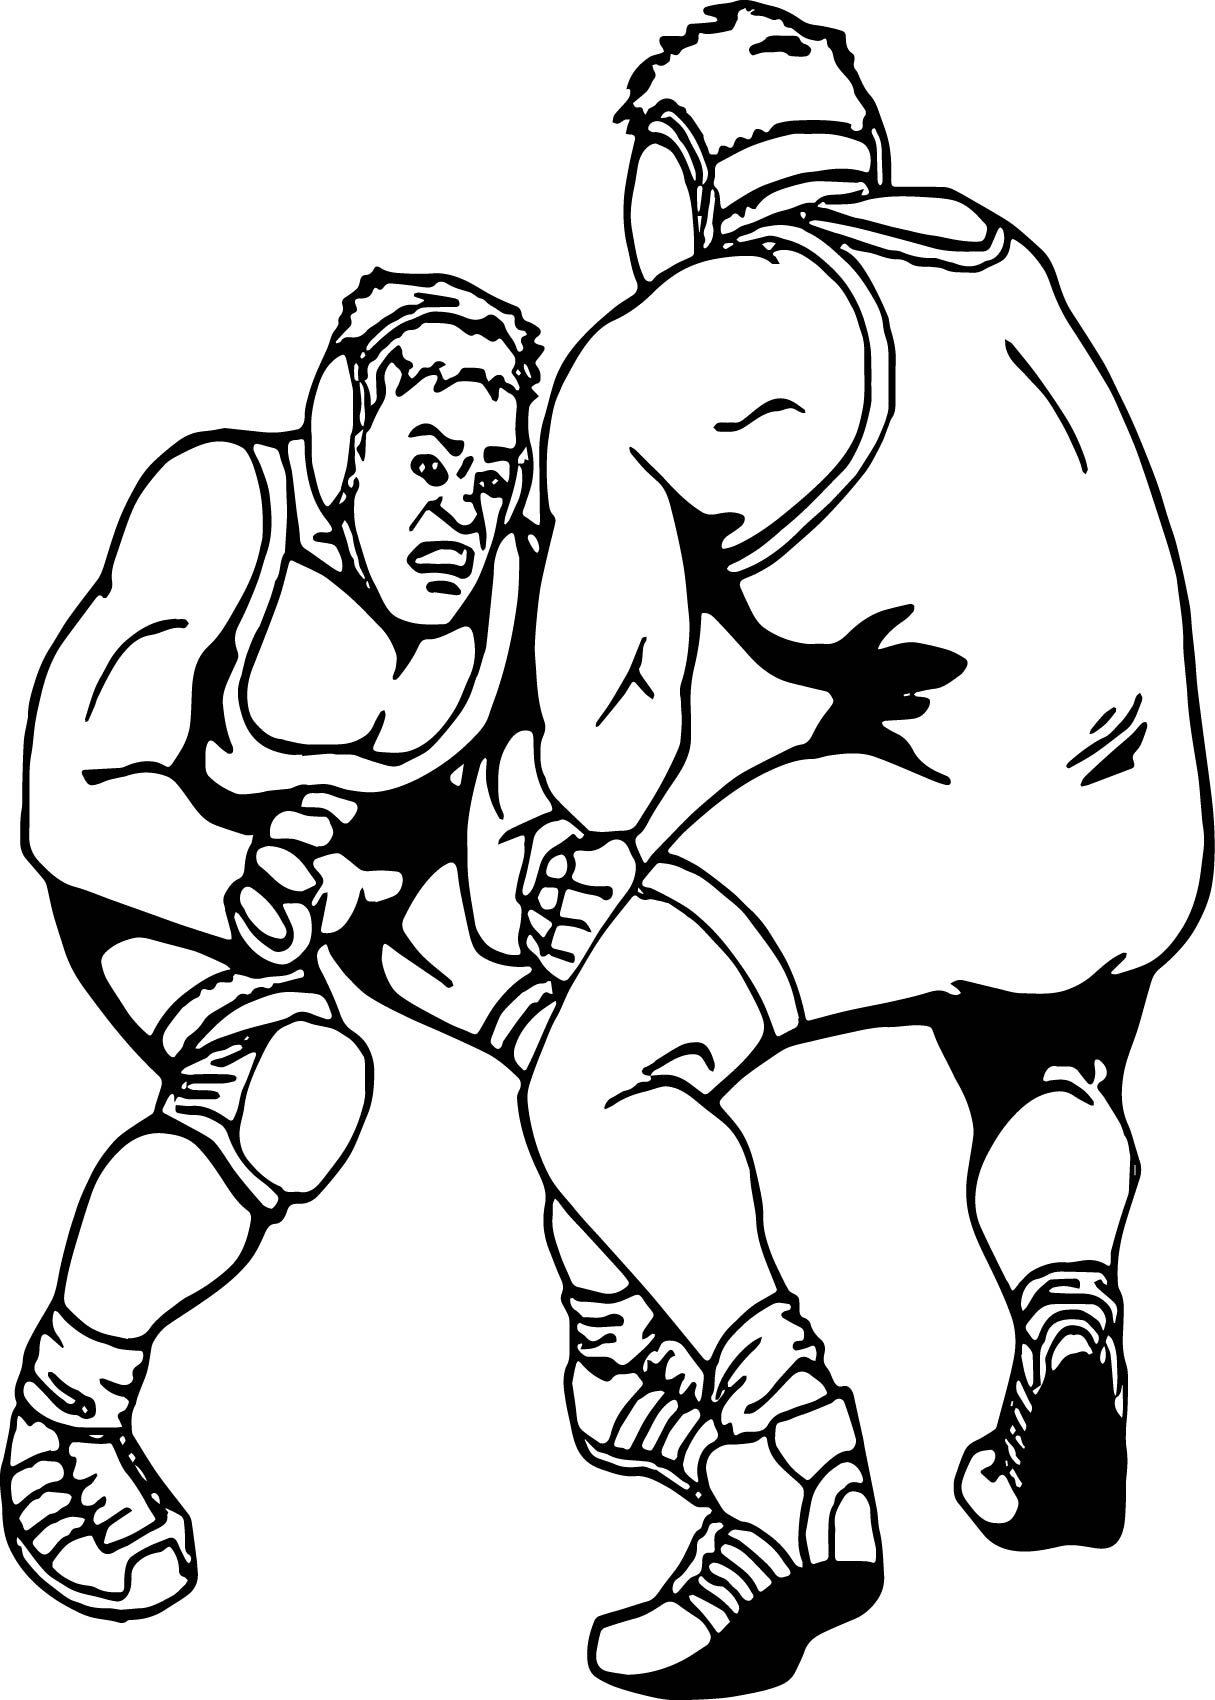 Wrestling Fight Coloring Page